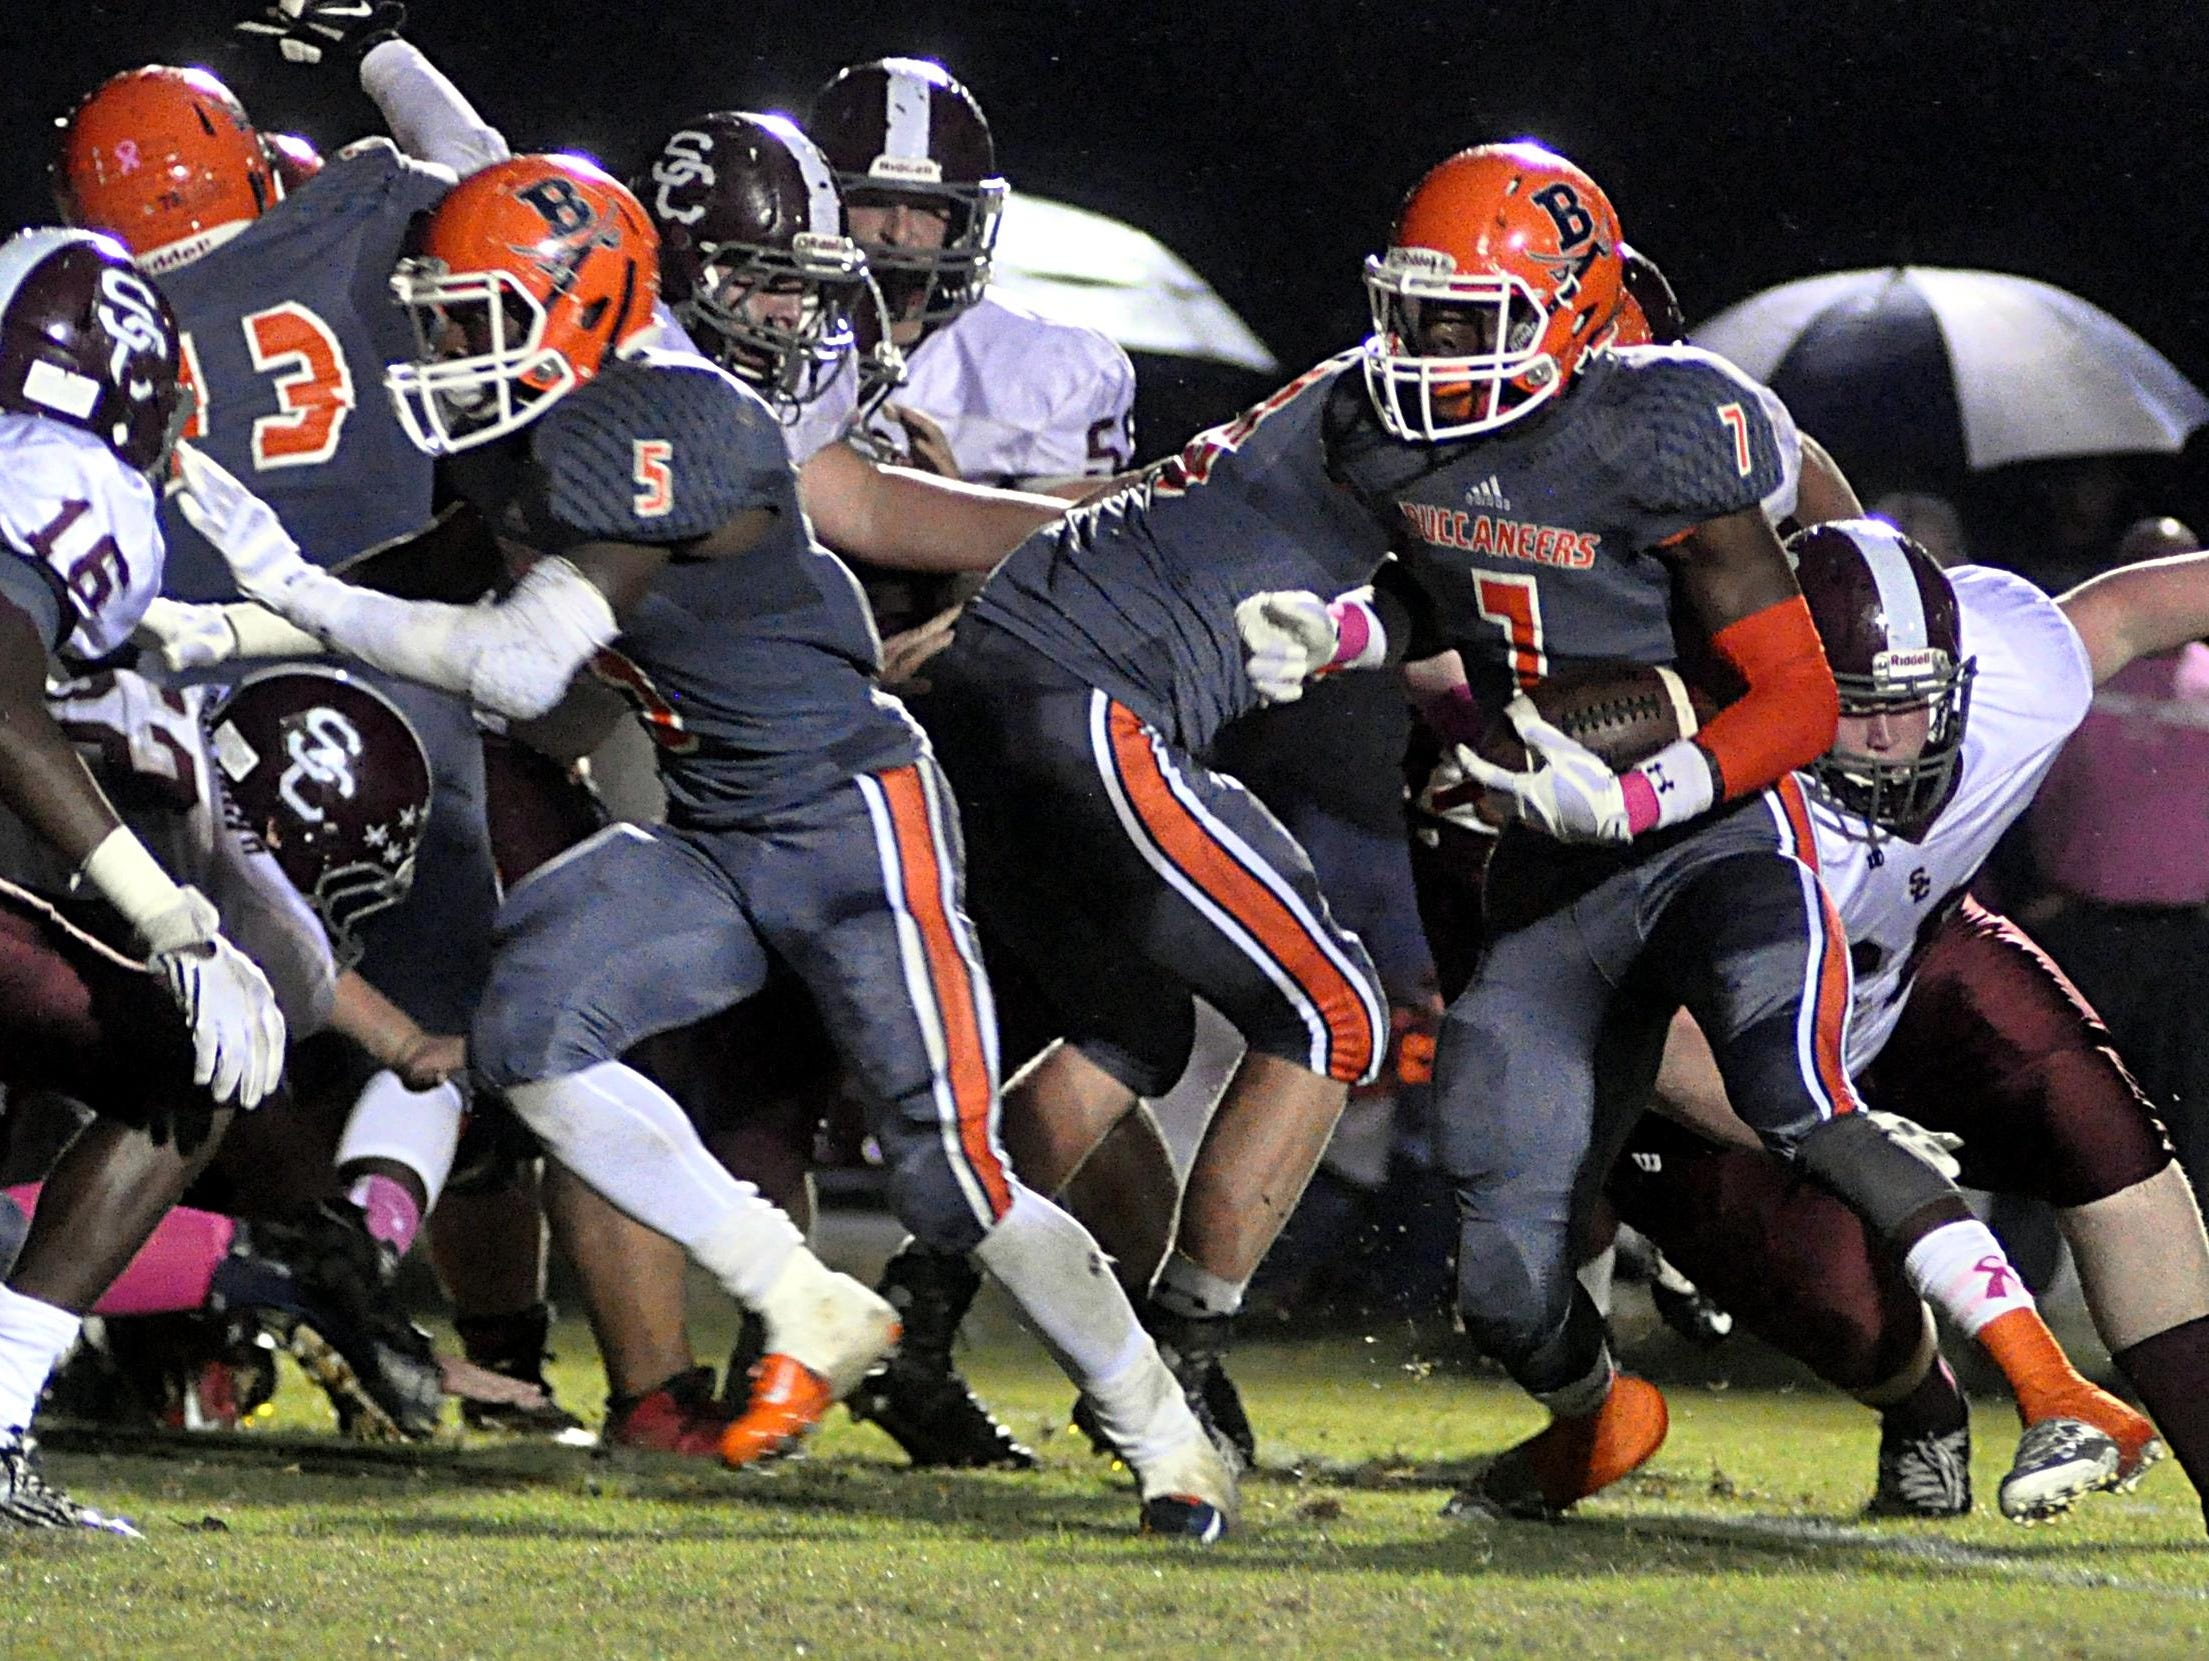 Beech High senior Auston Vanzant (7) carries the ball during a second-quarter touchdown during Friday evening's 41-14 victory over Station Camp.